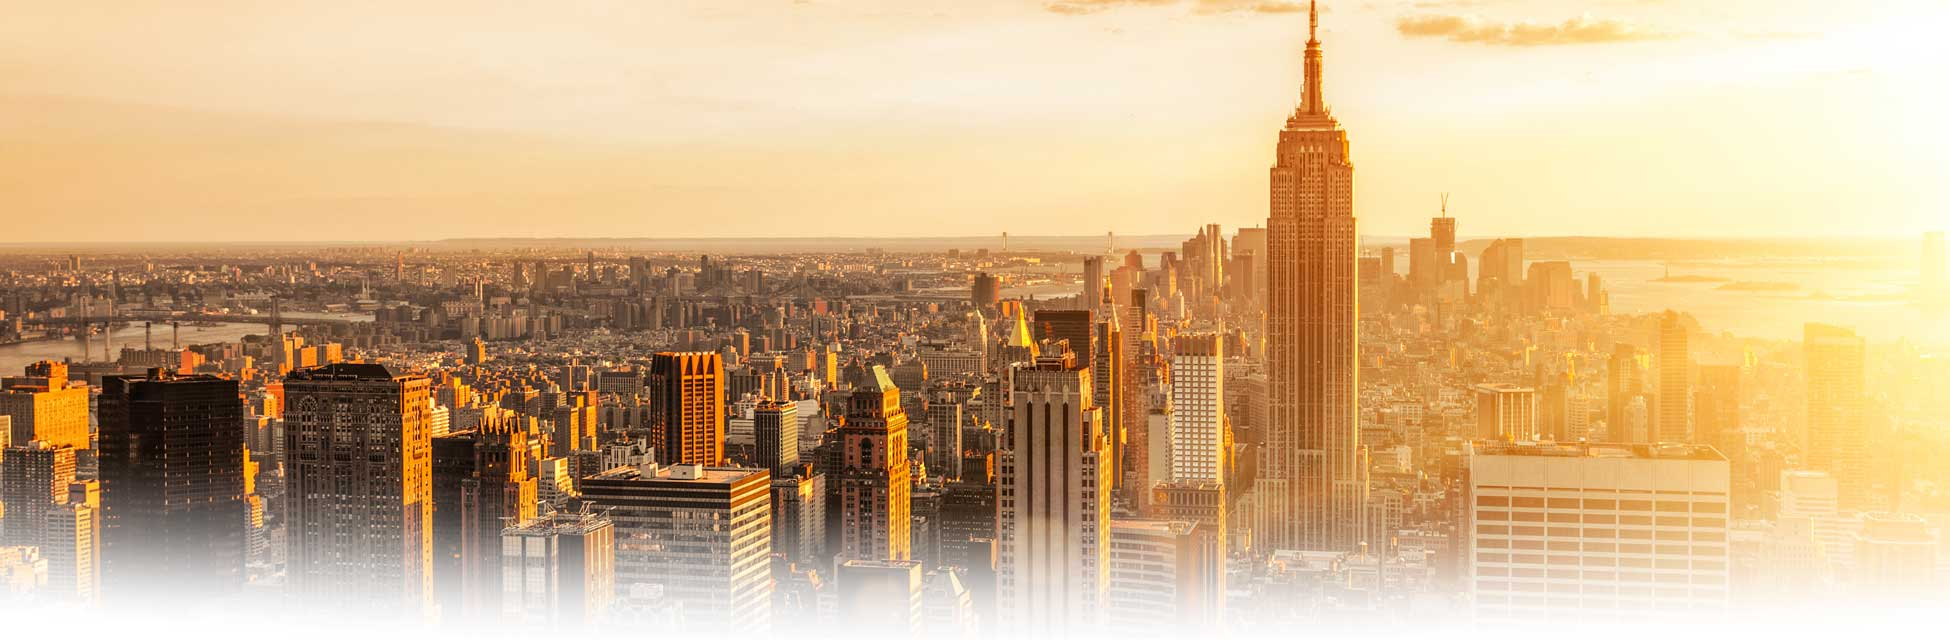 new-york-manhattan-skyline.jpg